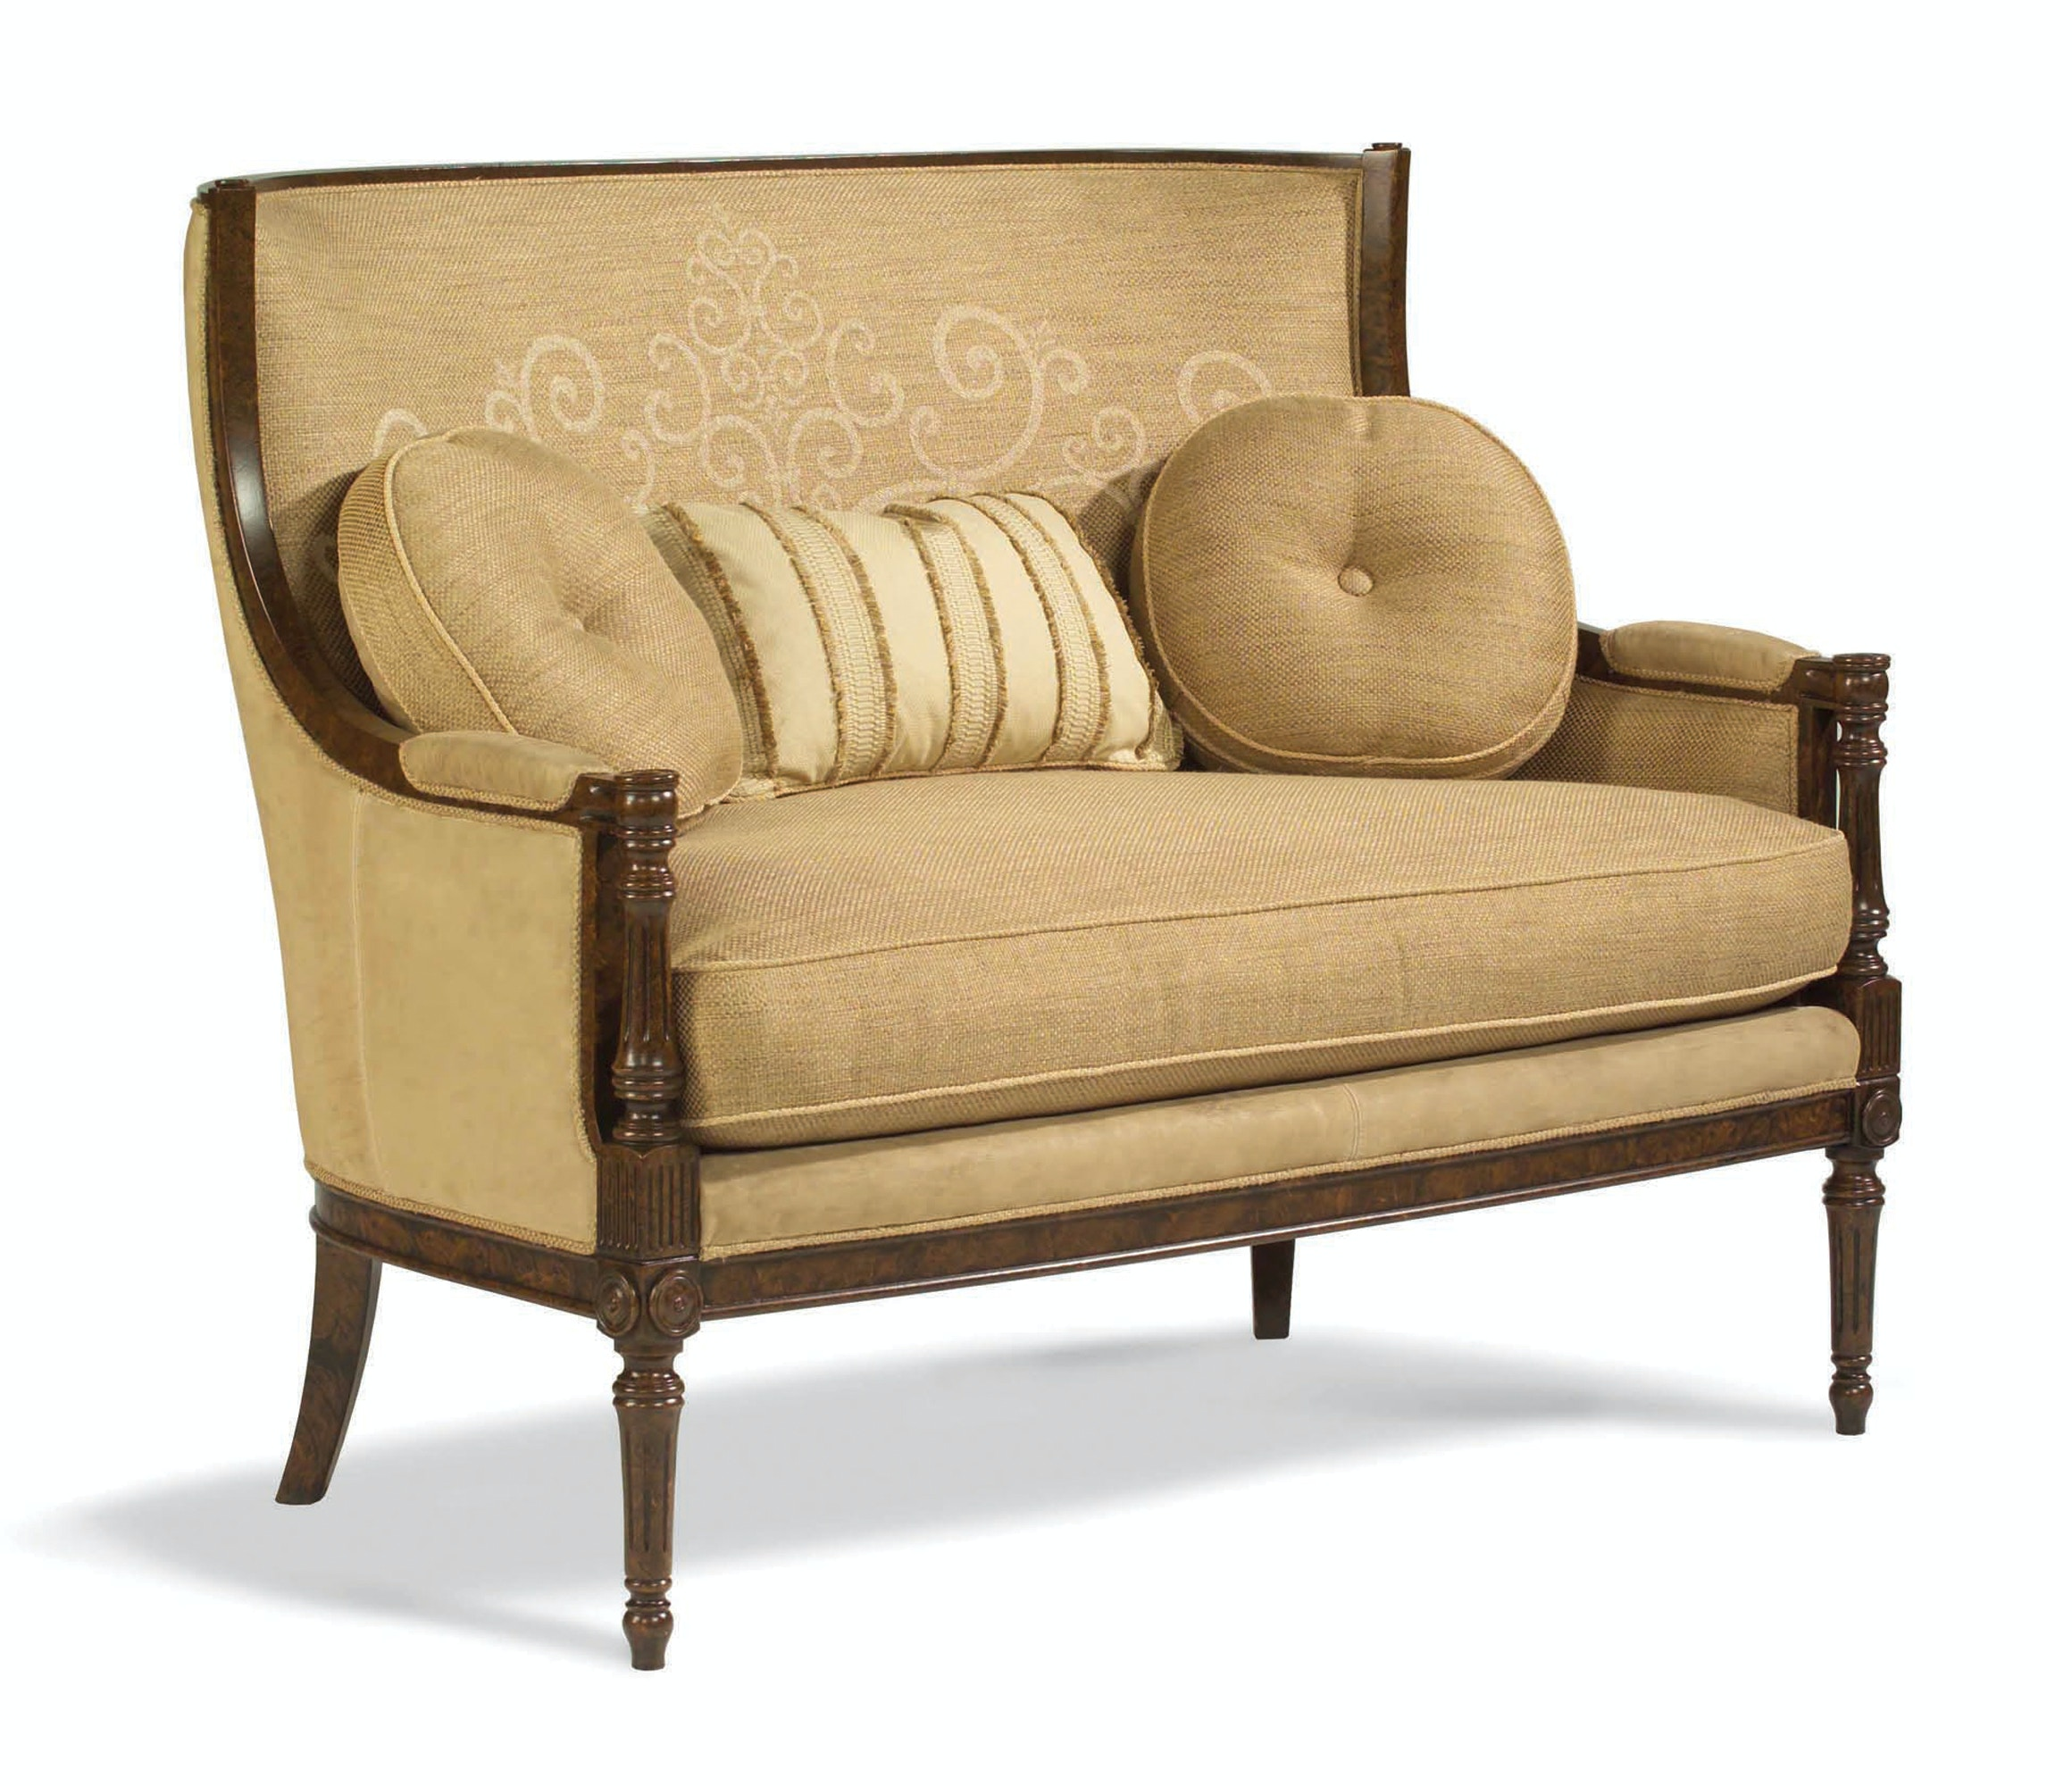 Taylor King Furniture Living Room Settees Goods Home Furnishings